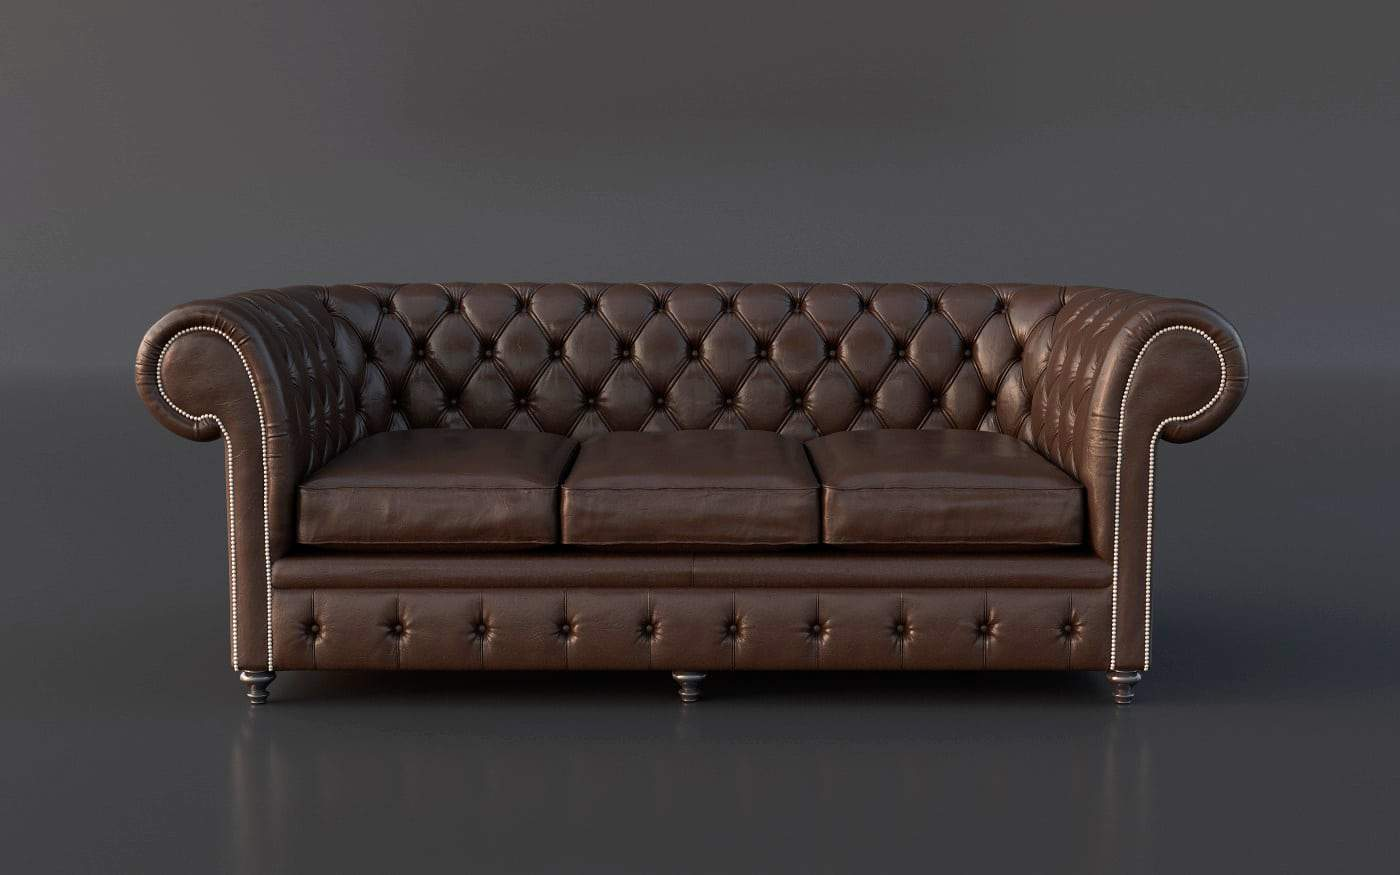 Chesterfield Sofa Texture Chesterfield Couch 3d Model Gonzalo Briceno Tugues